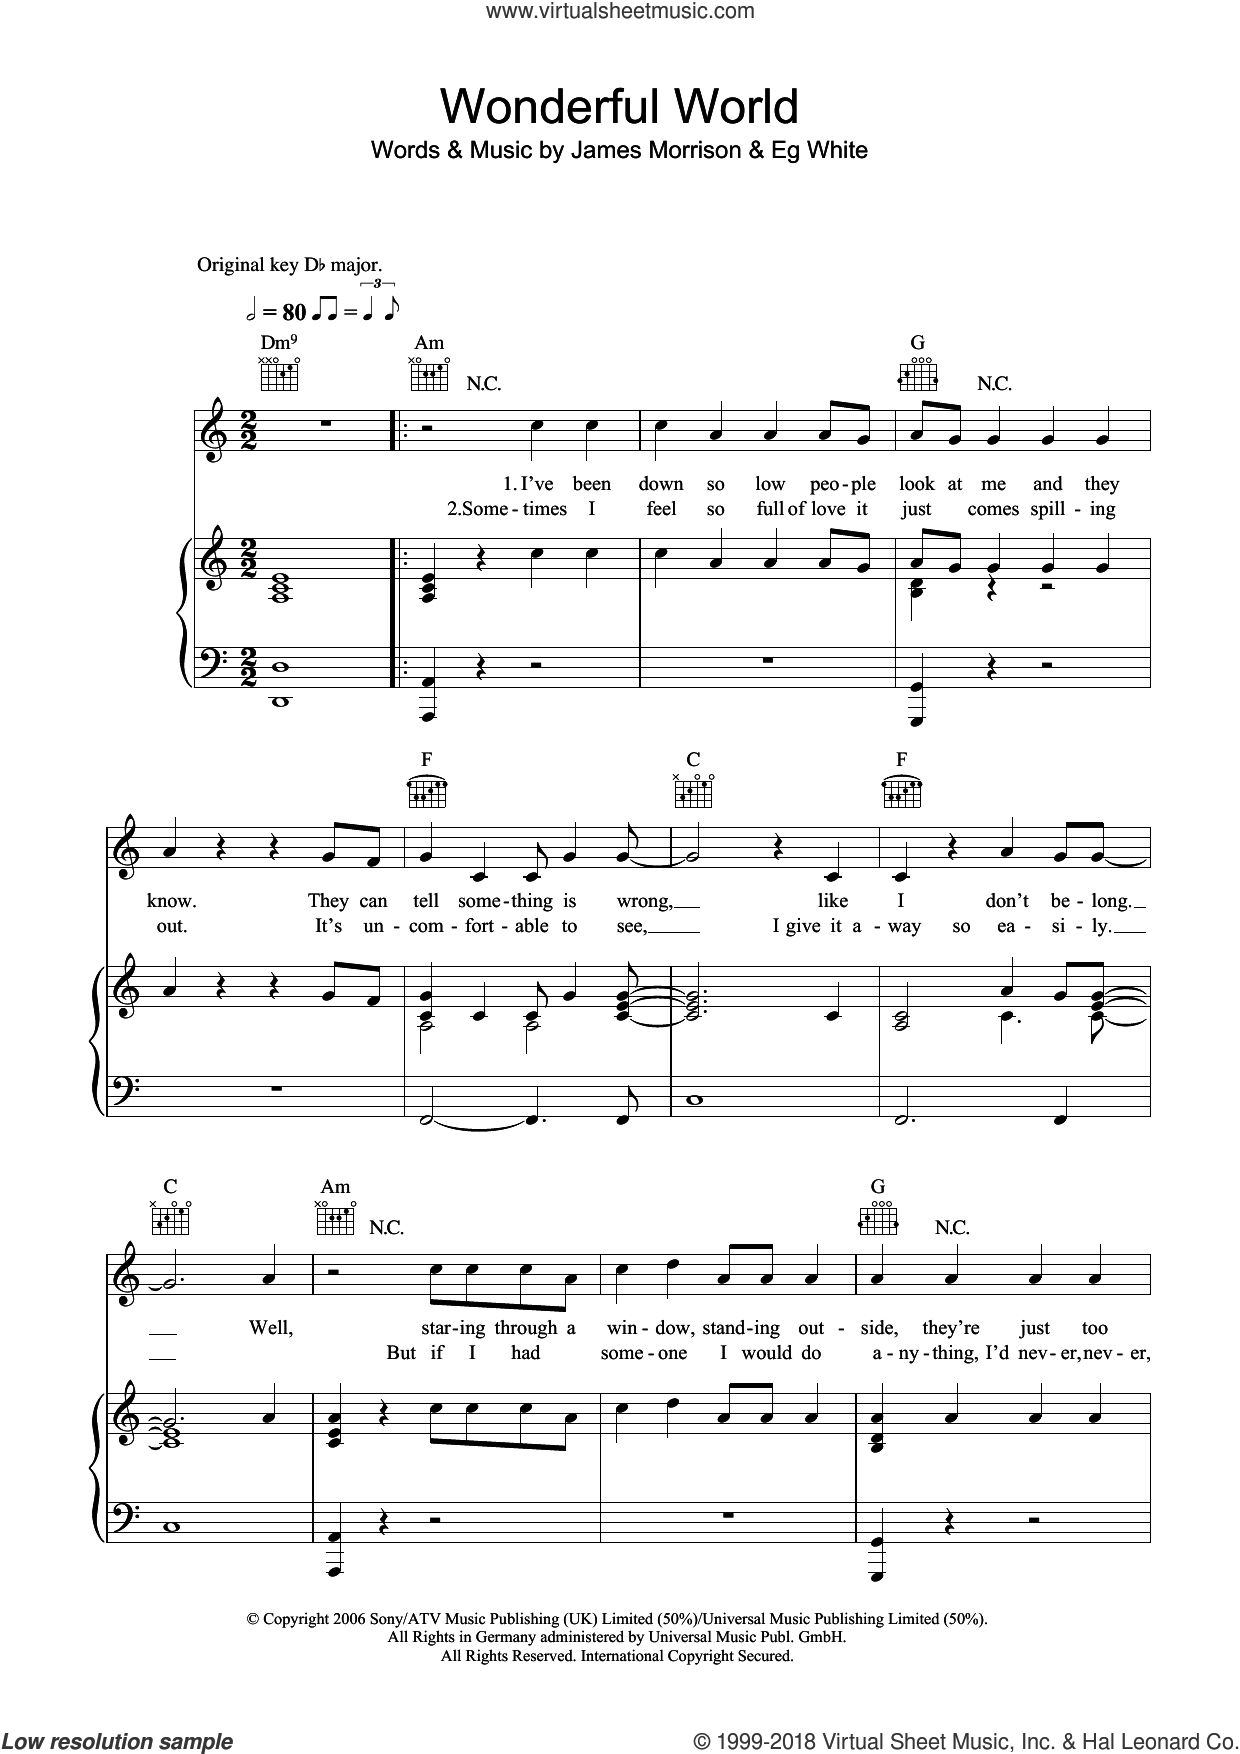 Wonderful World sheet music for voice, piano or guitar by Eg White and James Morrison. Score Image Preview.